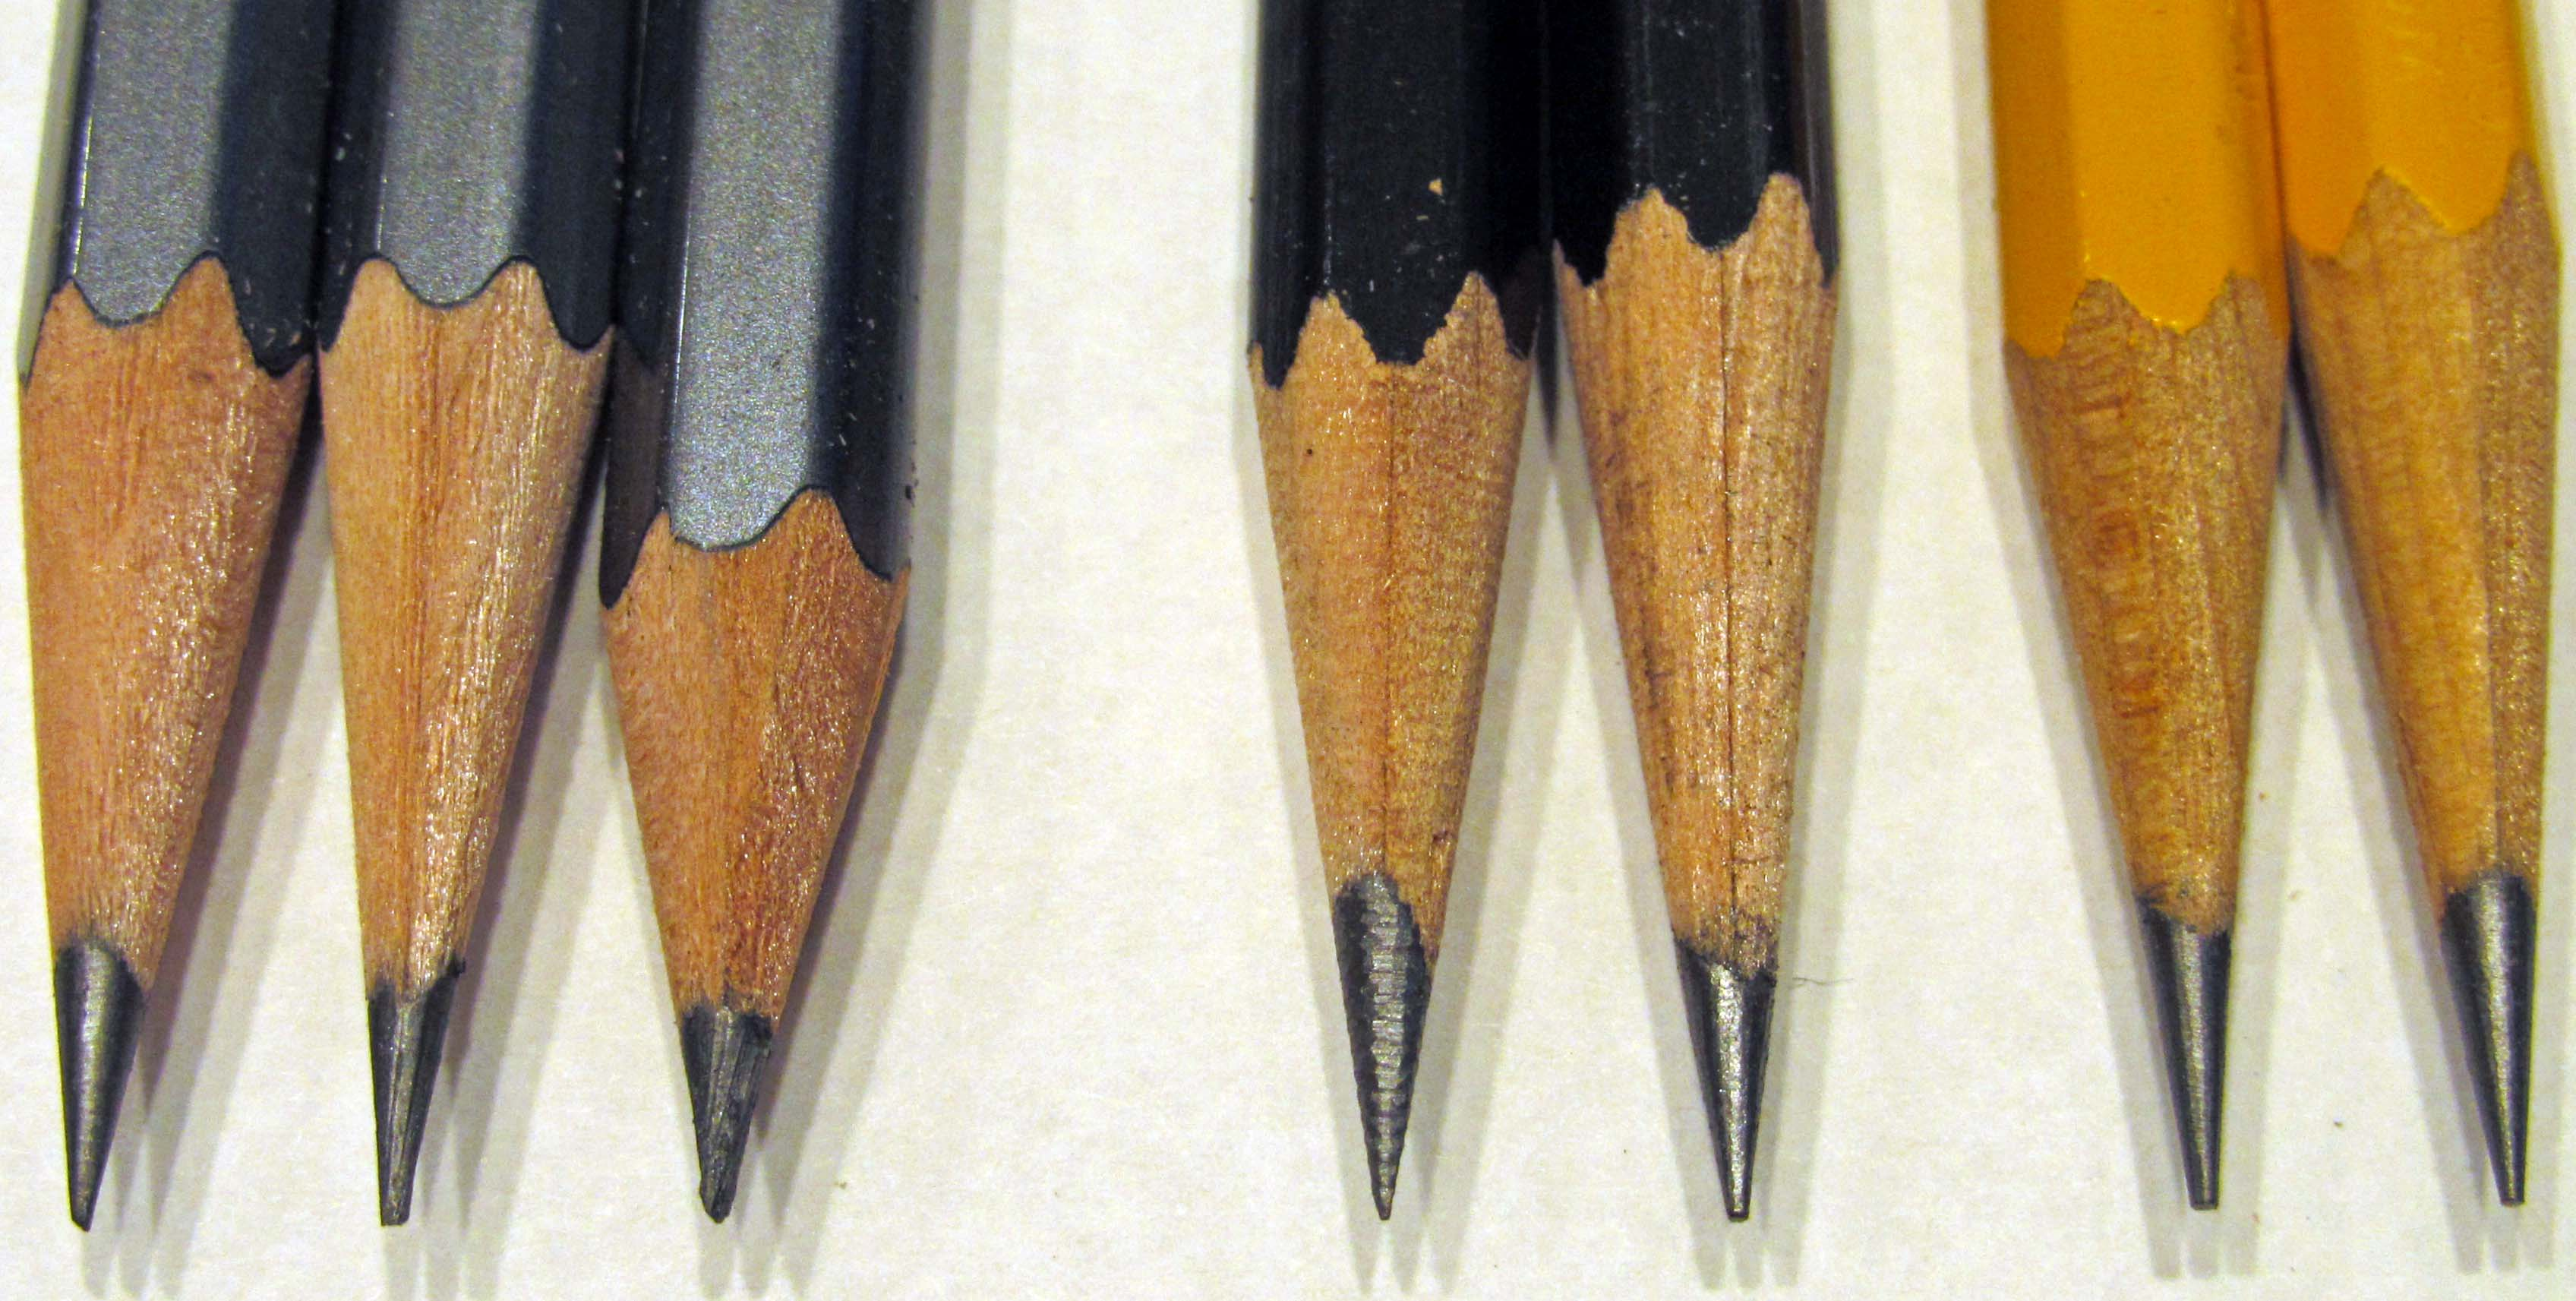 Sharpener Reviews Pencil Revolution